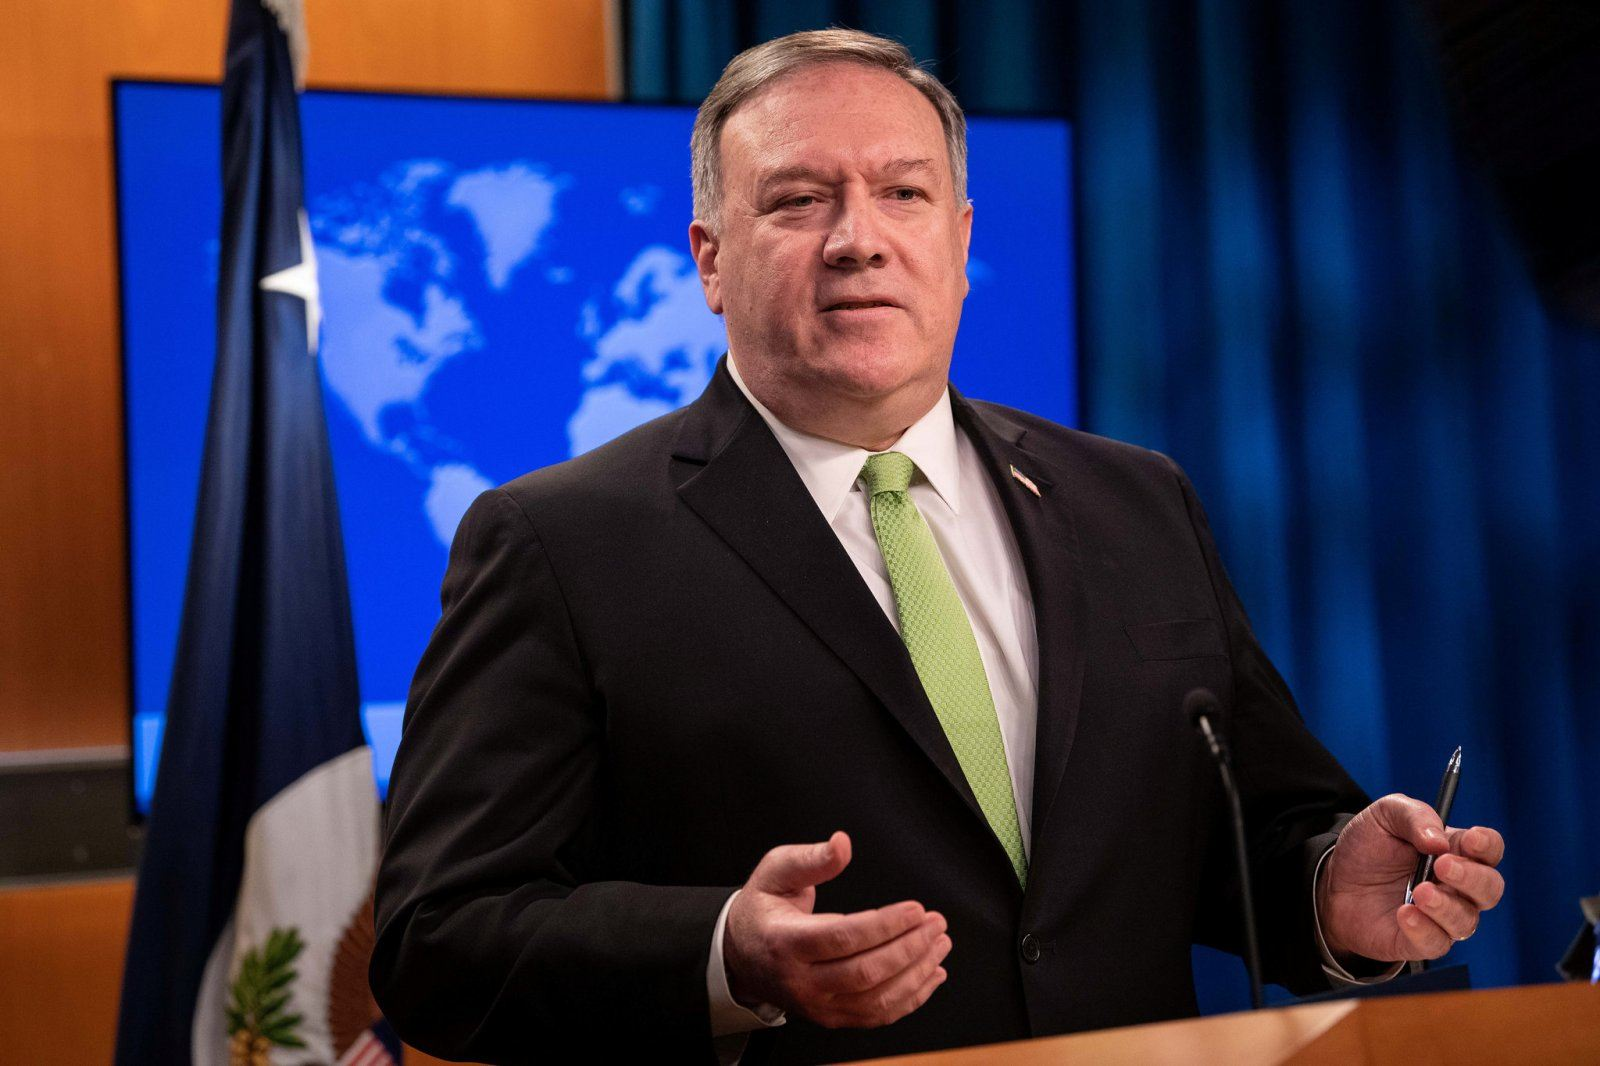 U.S. designating 6 more Chinese media as foreign missions: Pompeo